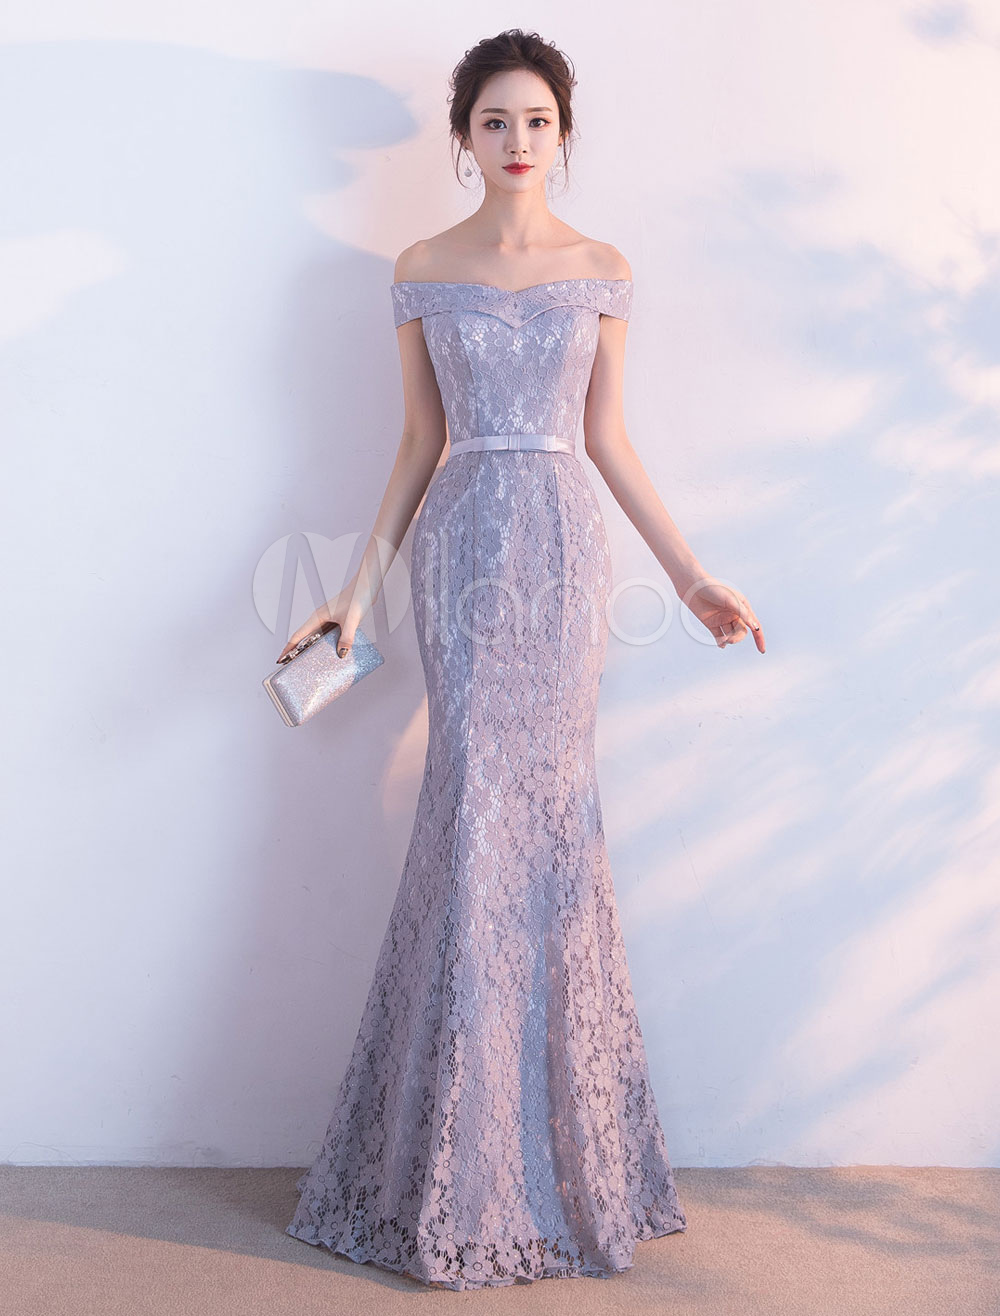 00a44da480cf ... Lace Evening Dress Mermaid Off The Shoulder Evening Gowns Light Grey  Sash Maxi Formal Dress-. 1. 60%OFF. Color: AddThis Sharing Buttons